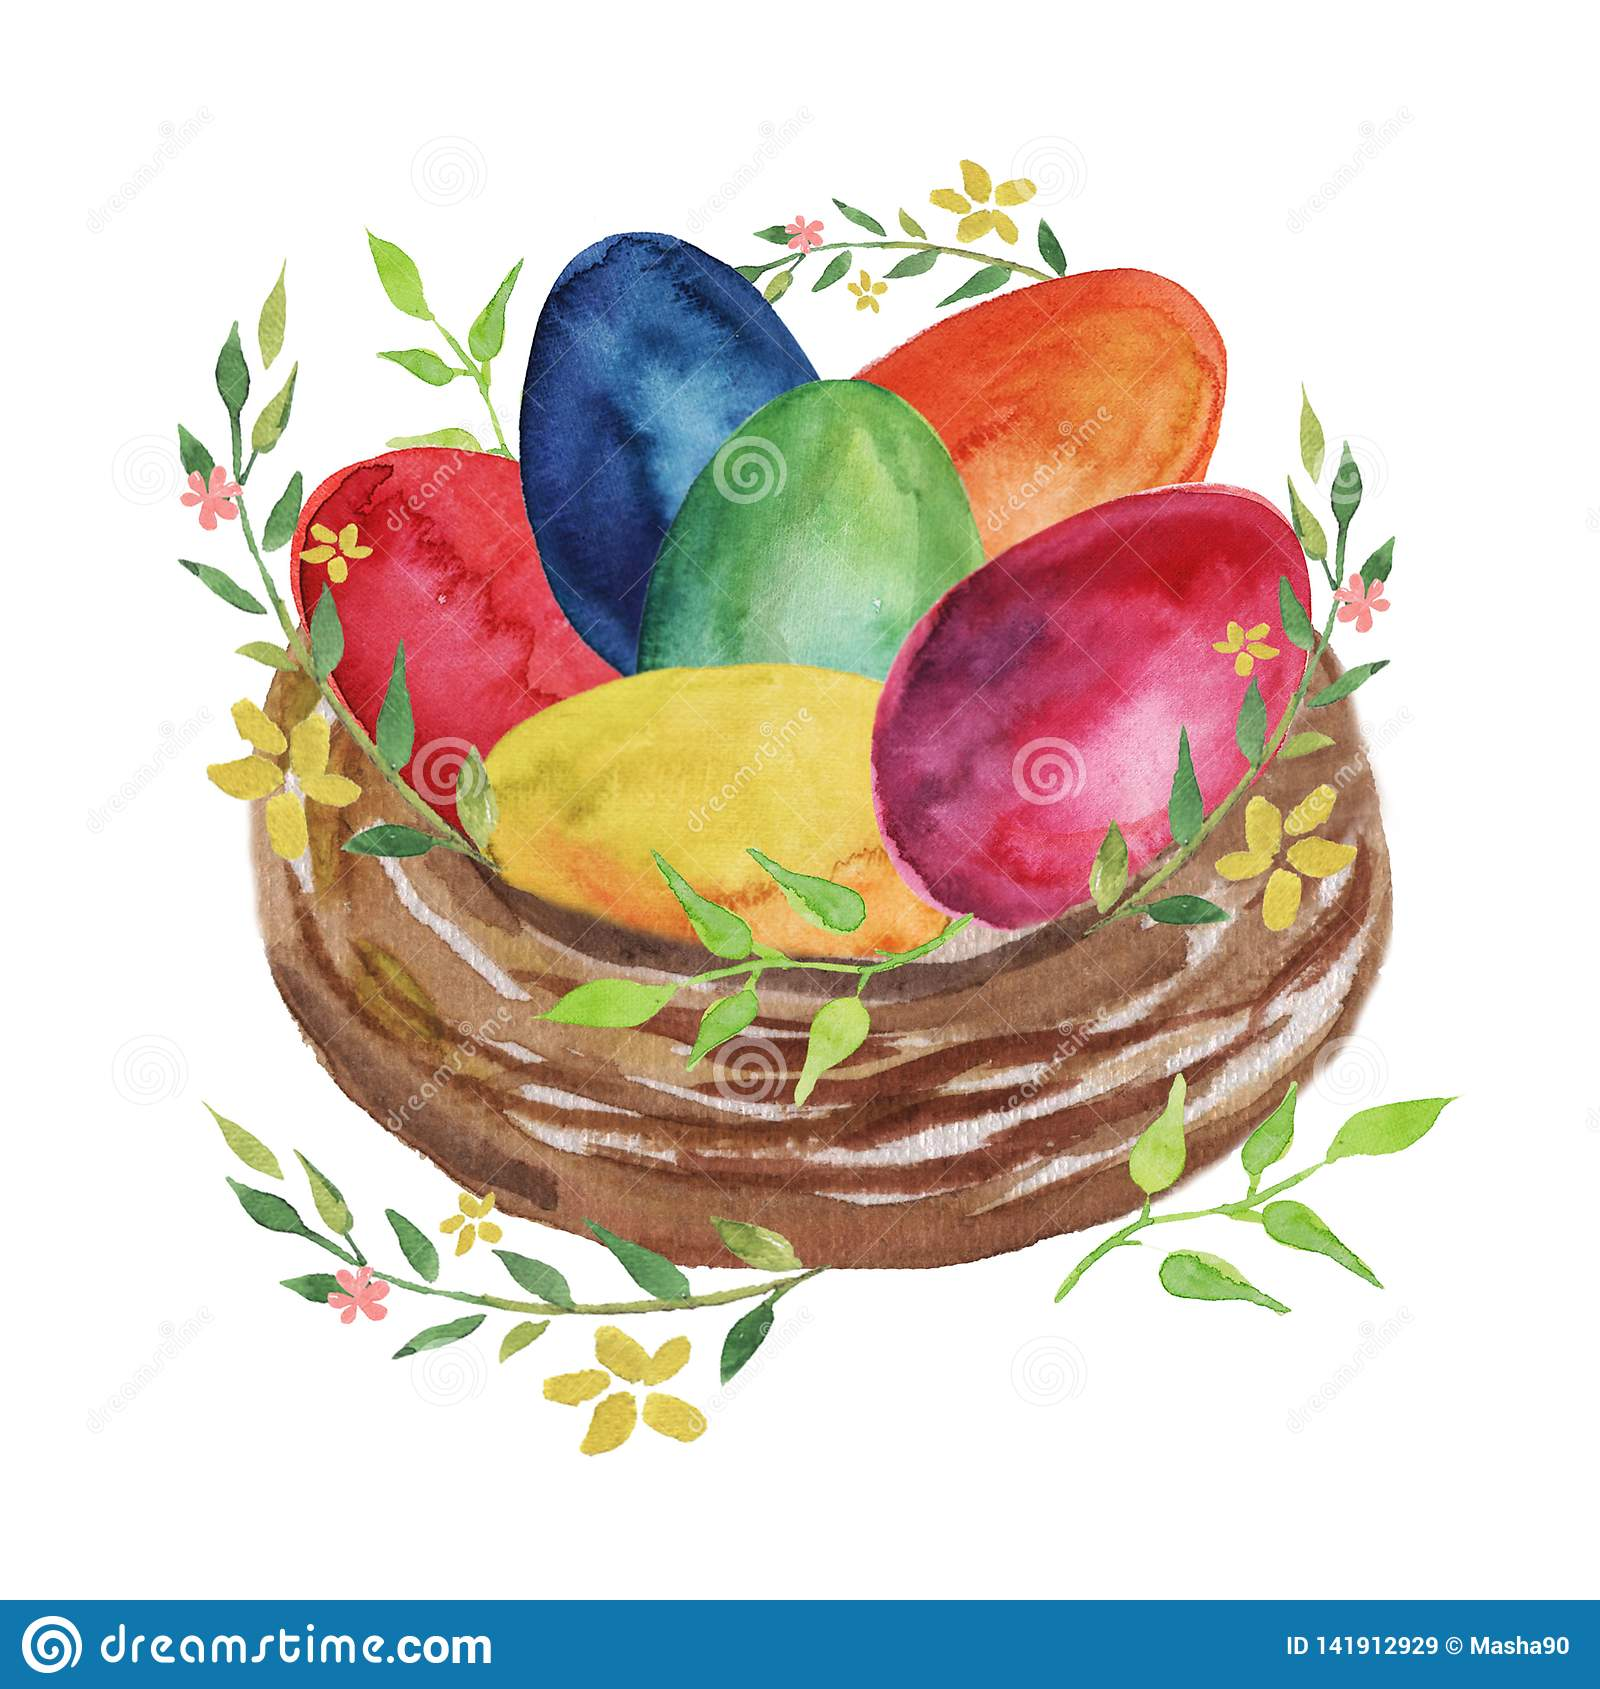 Easter nest with colored Easter eggs, flowers and spring plants on a white background.